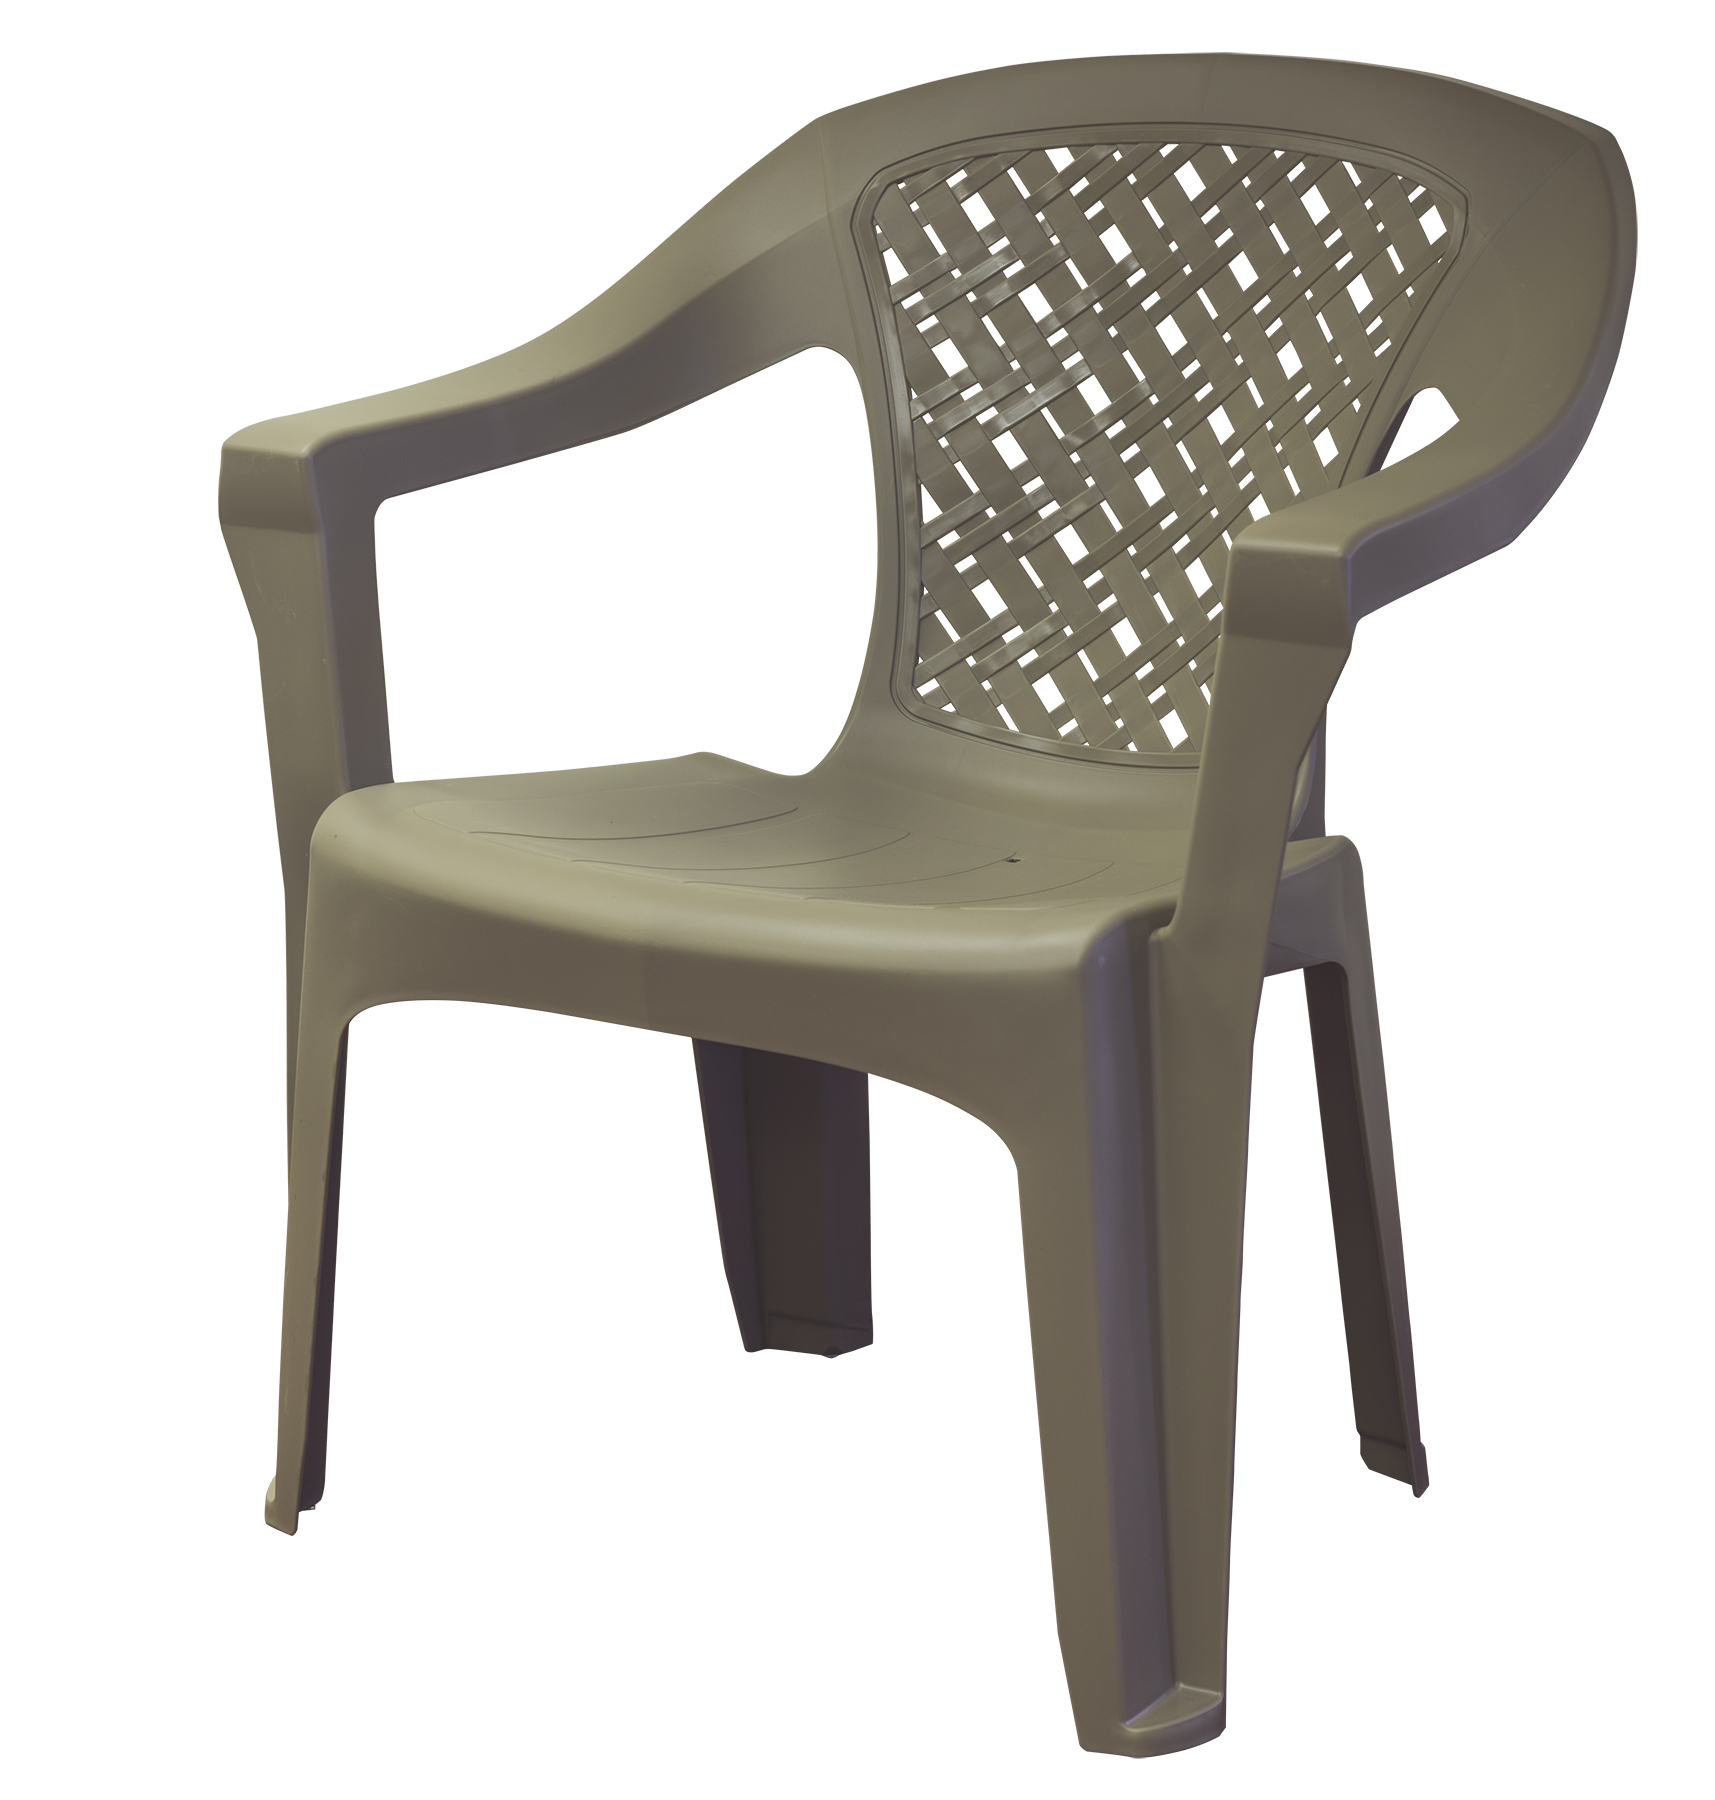 Adams Mfg Corp Resin Big Easy Woven Chair Grey Walmart